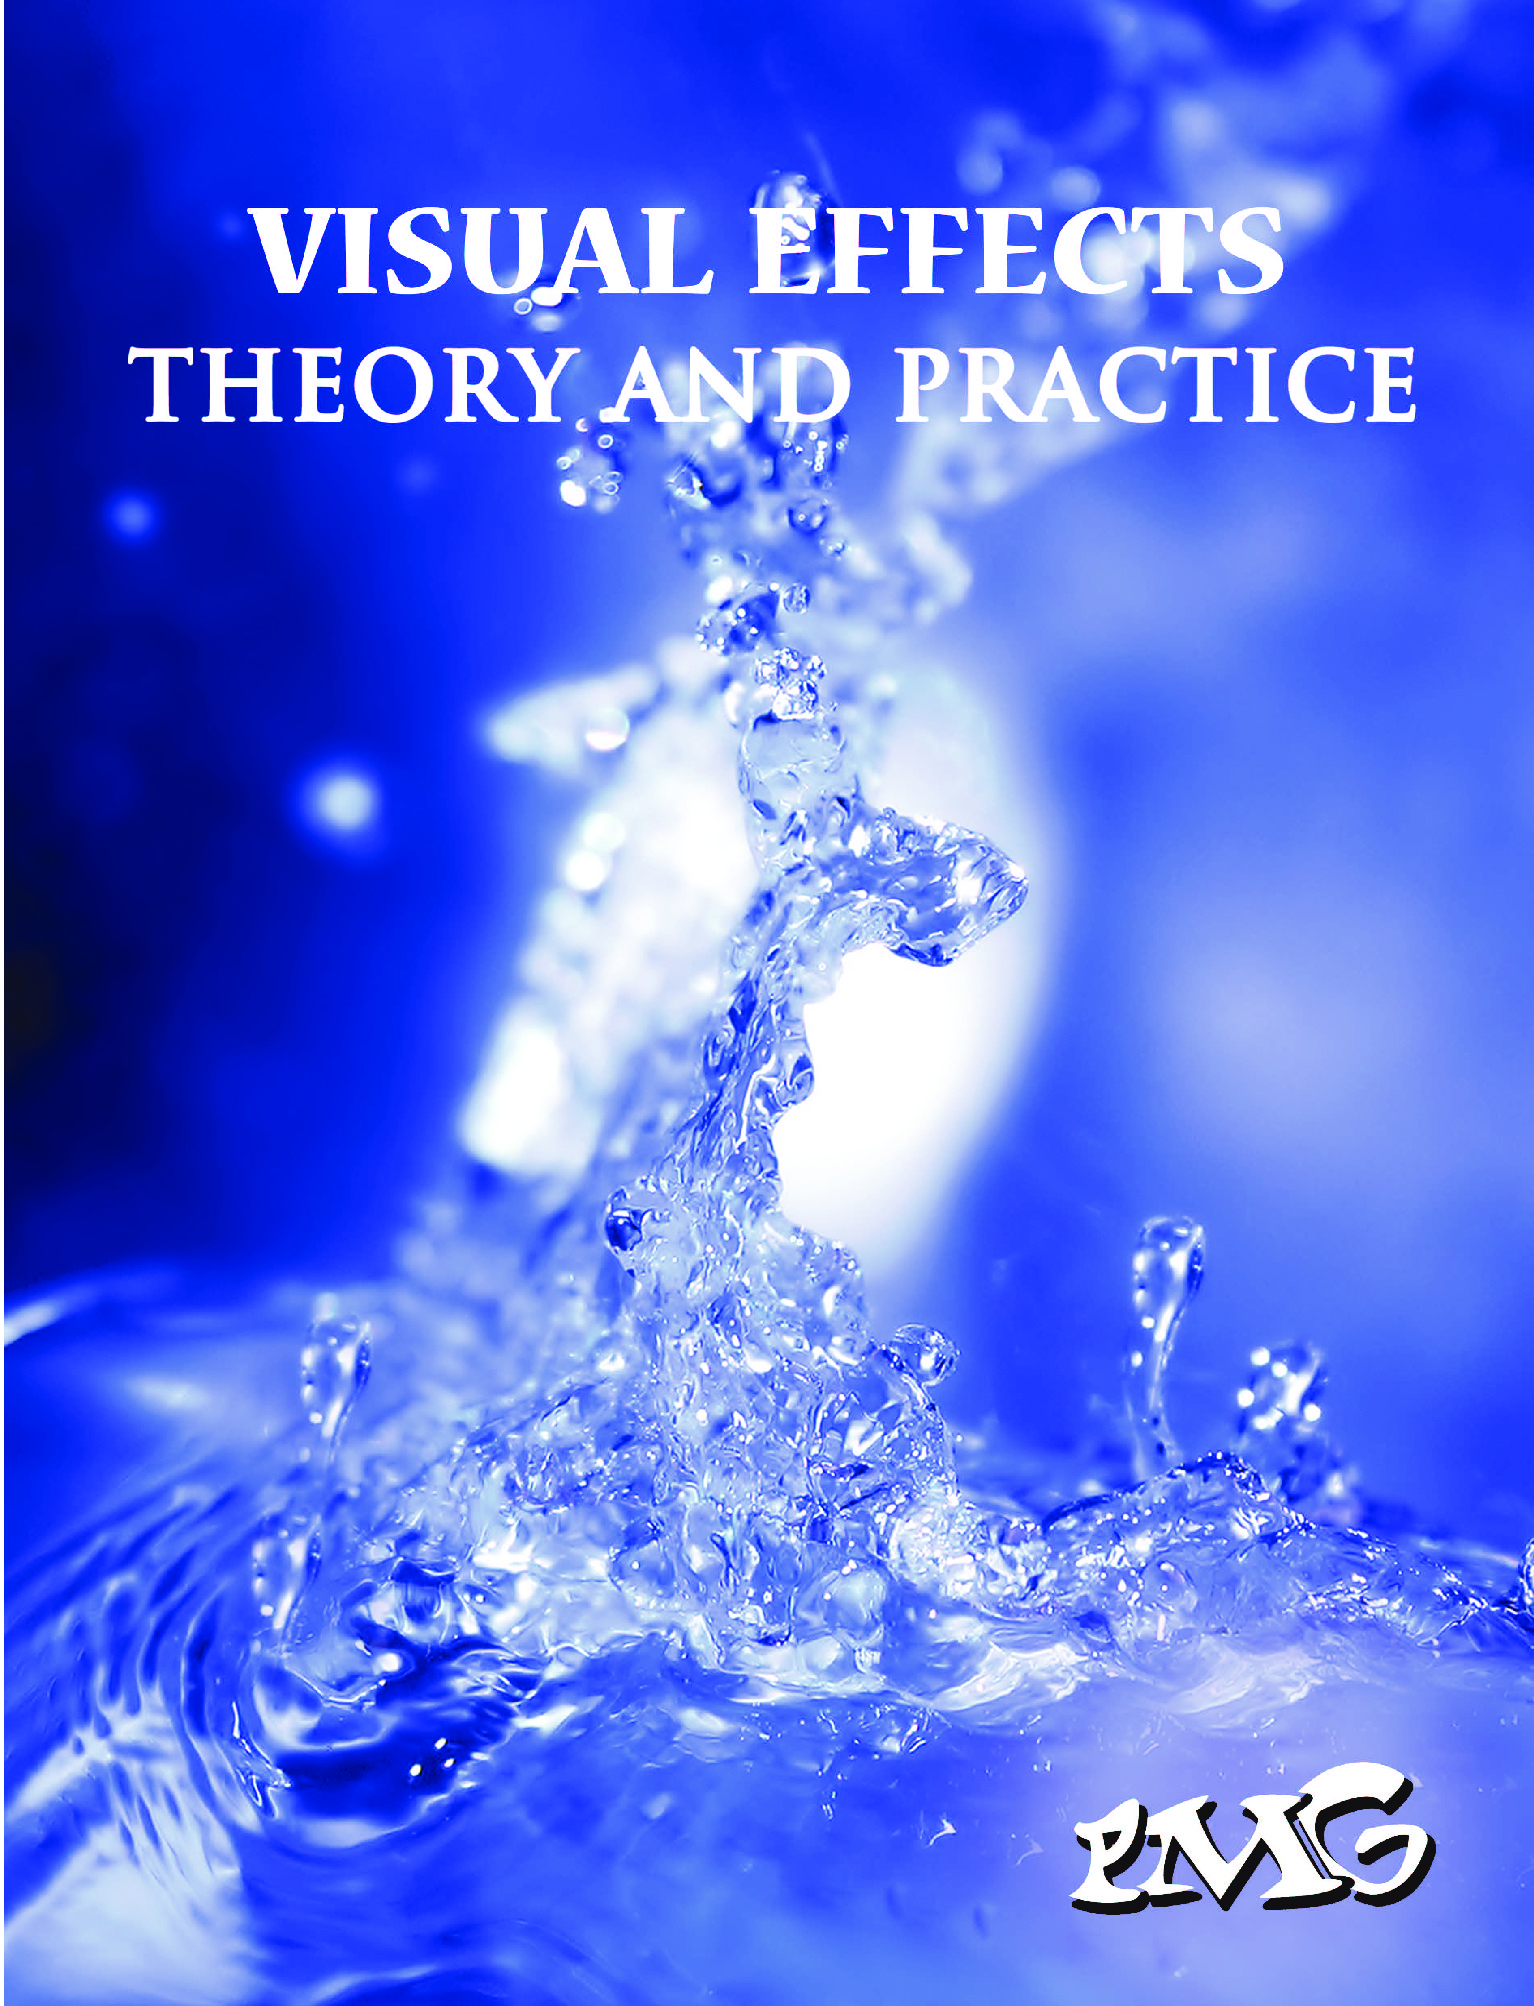 Visual Effects Theory And Practice Ebook Ebook Pothi Com